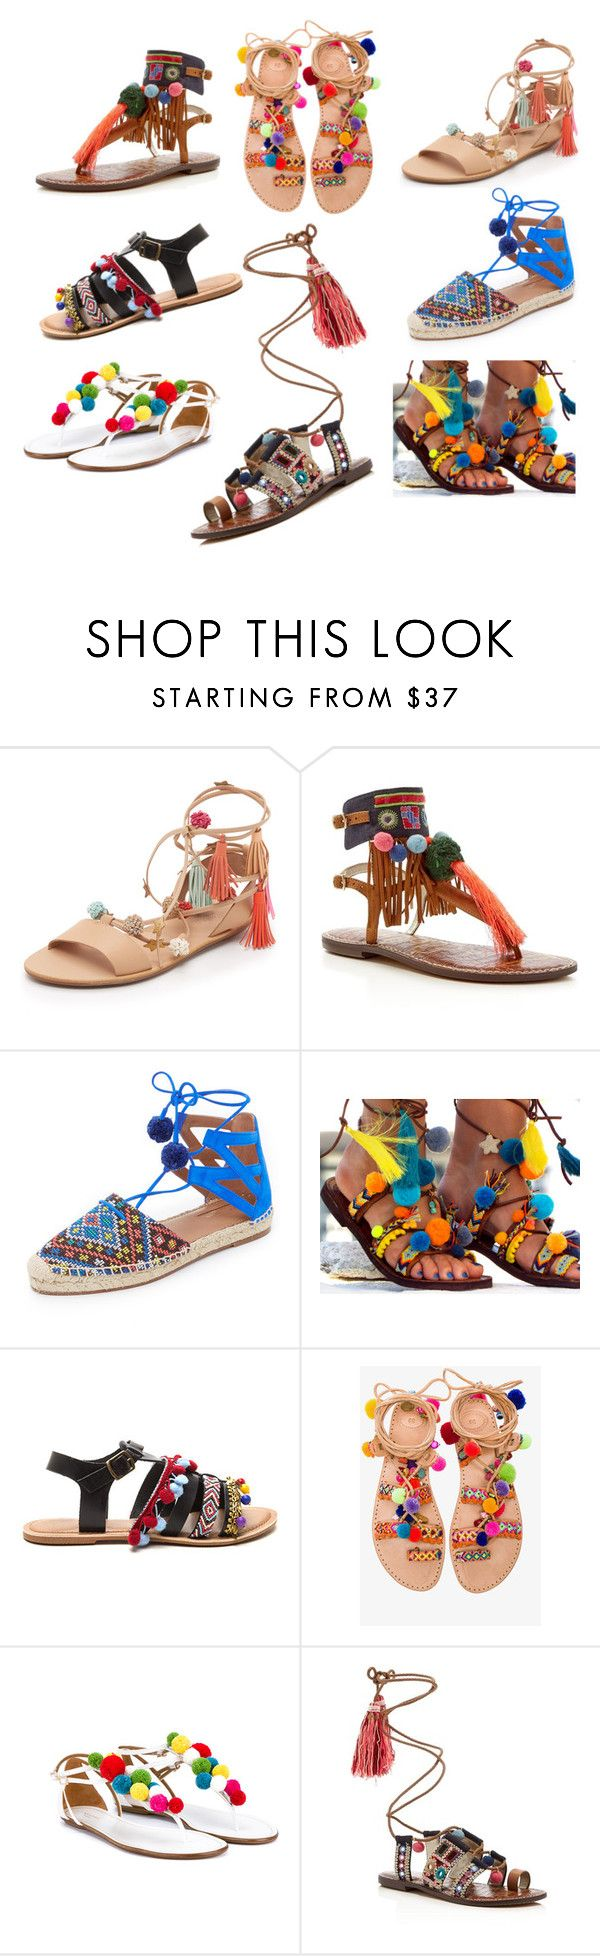 """Pom Pom Spring Sandals"" by andrea-jueong ❤ liked on Polyvore featuring Loeffler Randall, Sam Edelman, Aquazzura, Elina Linardaki, Spring, shoes and sandals"